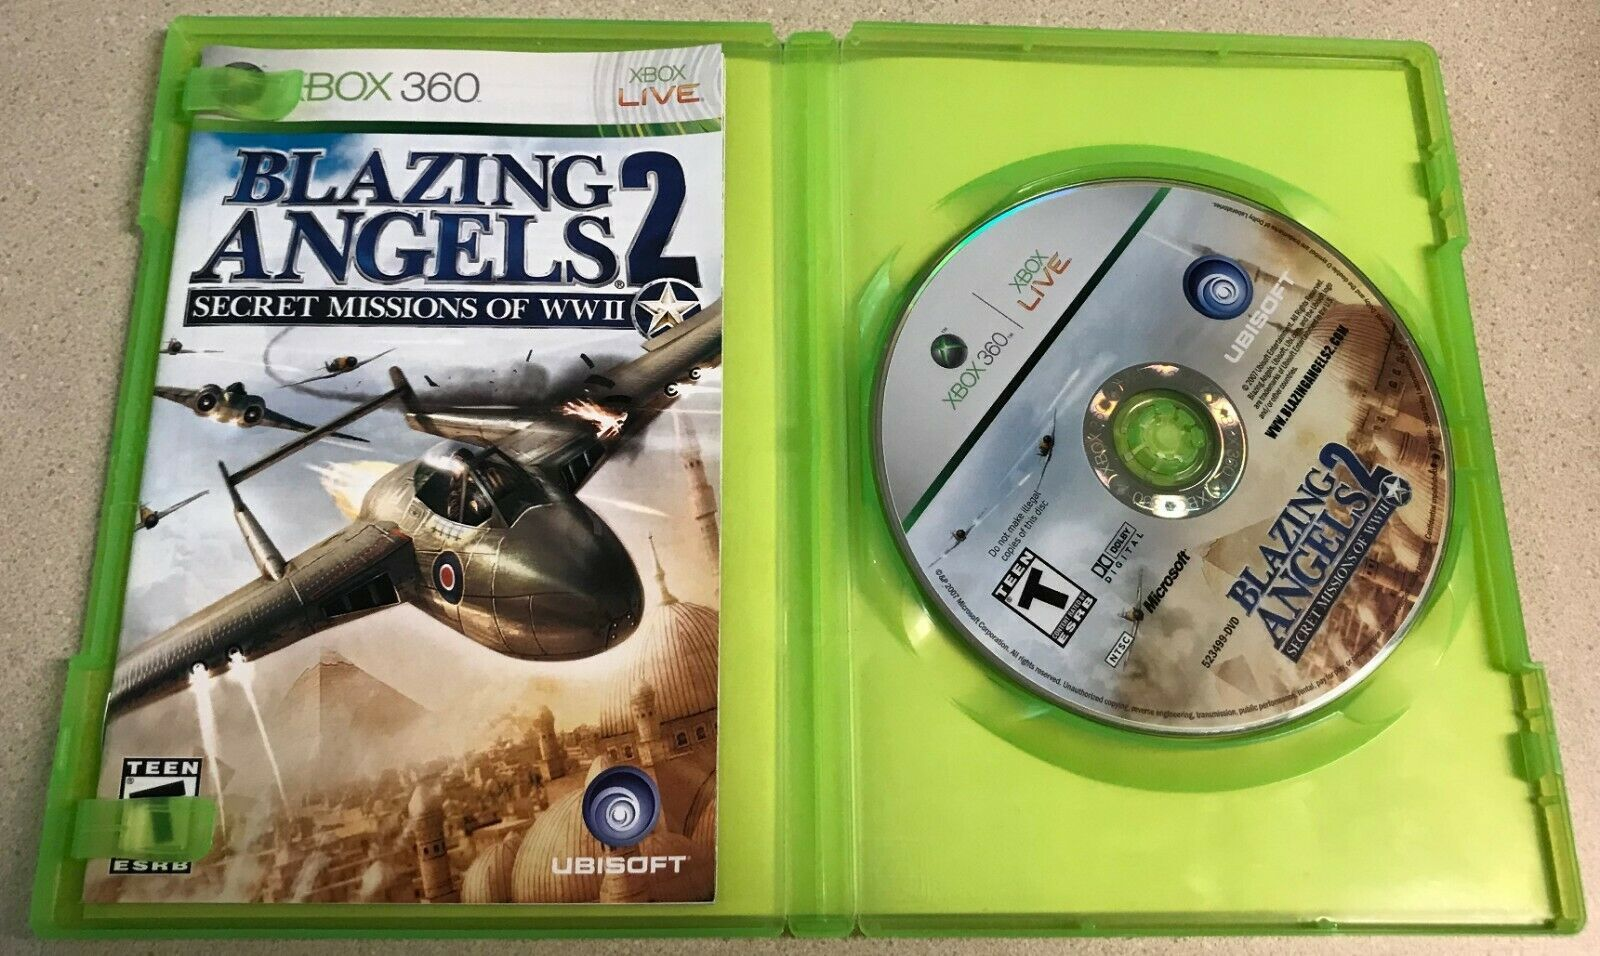 Blazing Angels 2: Secret Missions of WWII (Microsoft Xbox 360, 2007) Game image 3